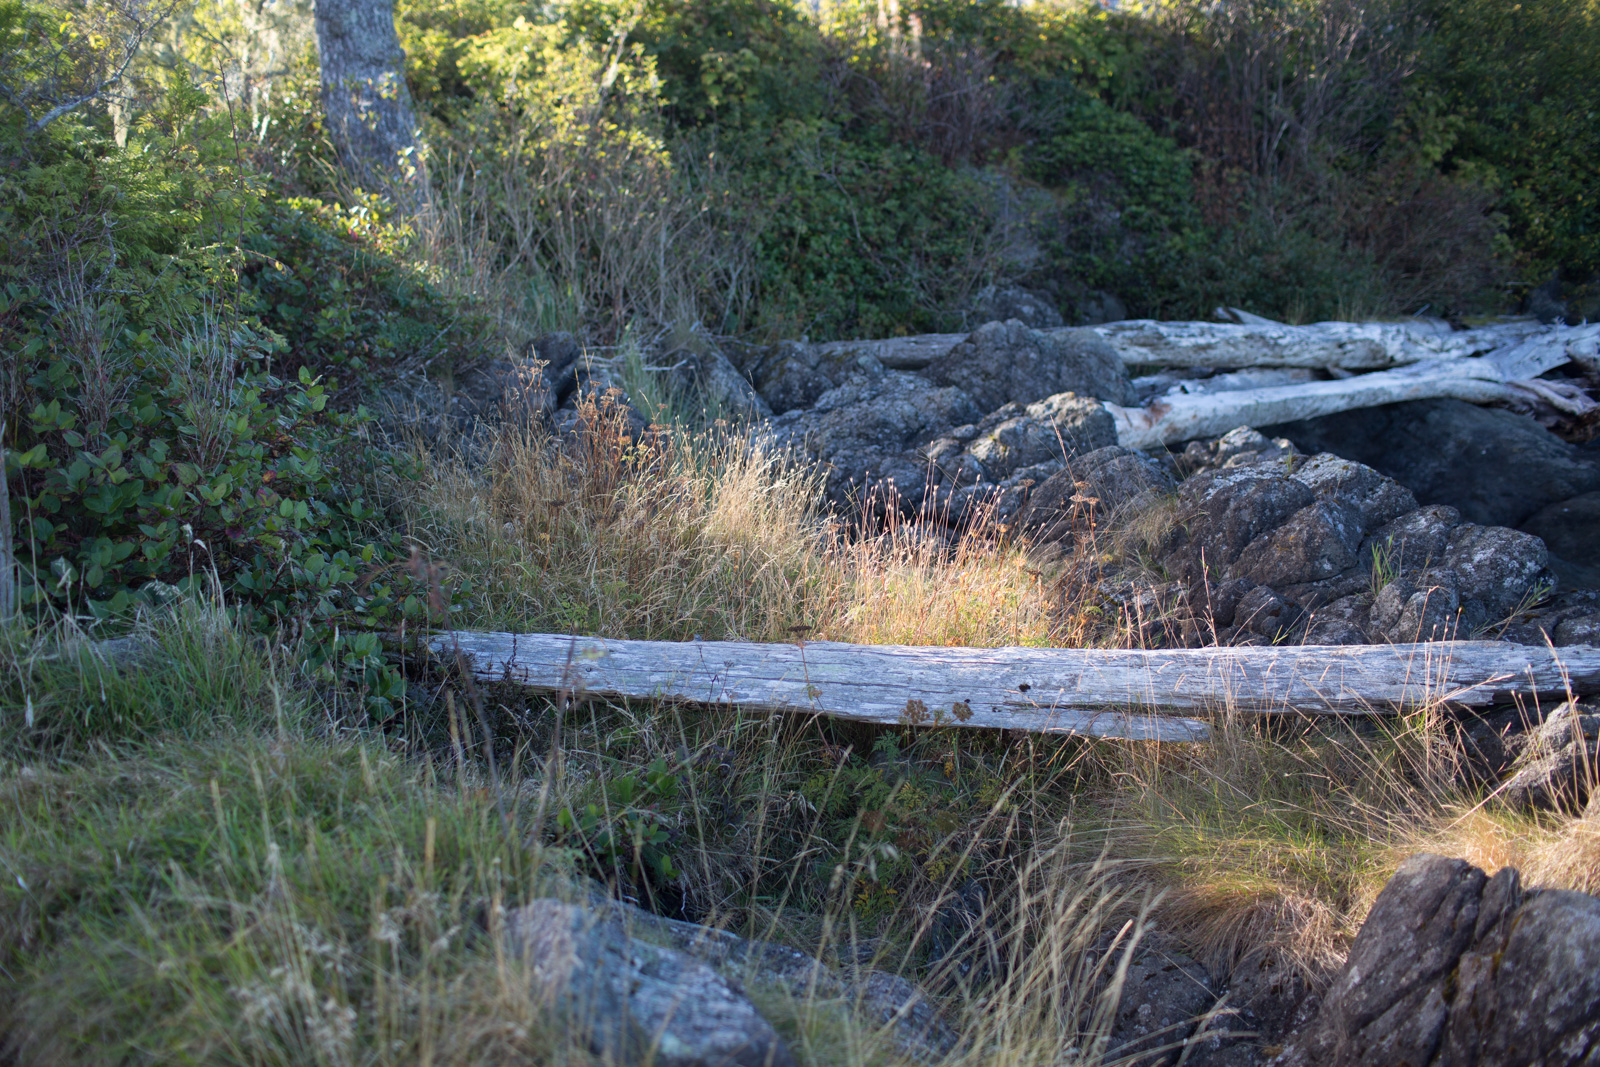 photo location pullback with giant log by Cassandra Casley